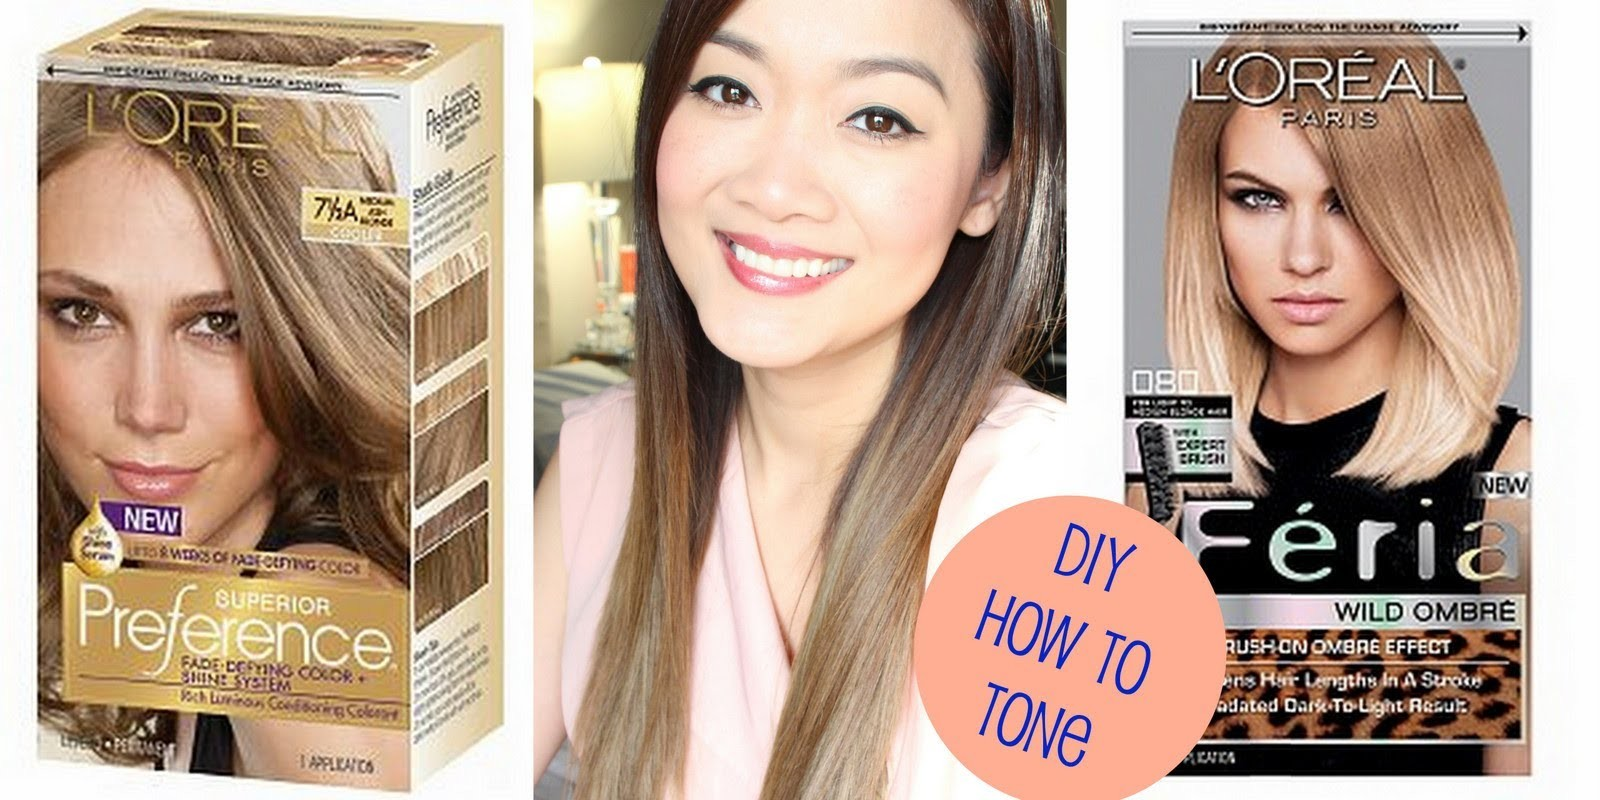 DIY : How to Tone Brassy Hair (after using Loreal Feria Wild Ombre)